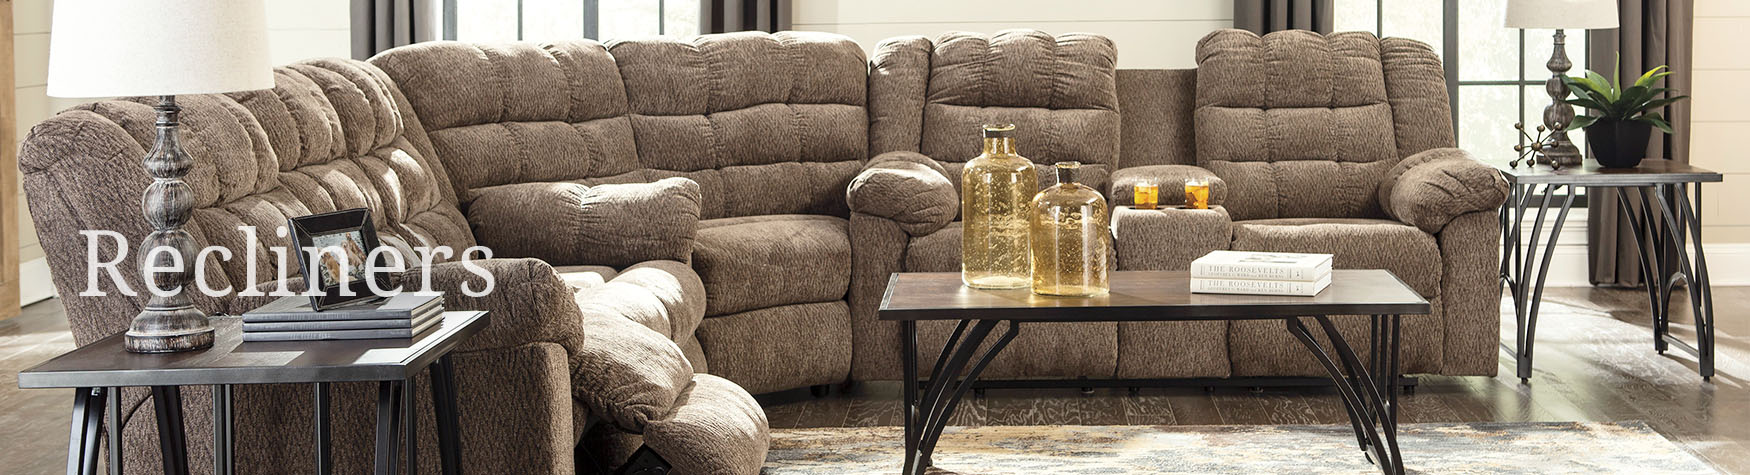 Living Room - Recliners - Lee Furniture